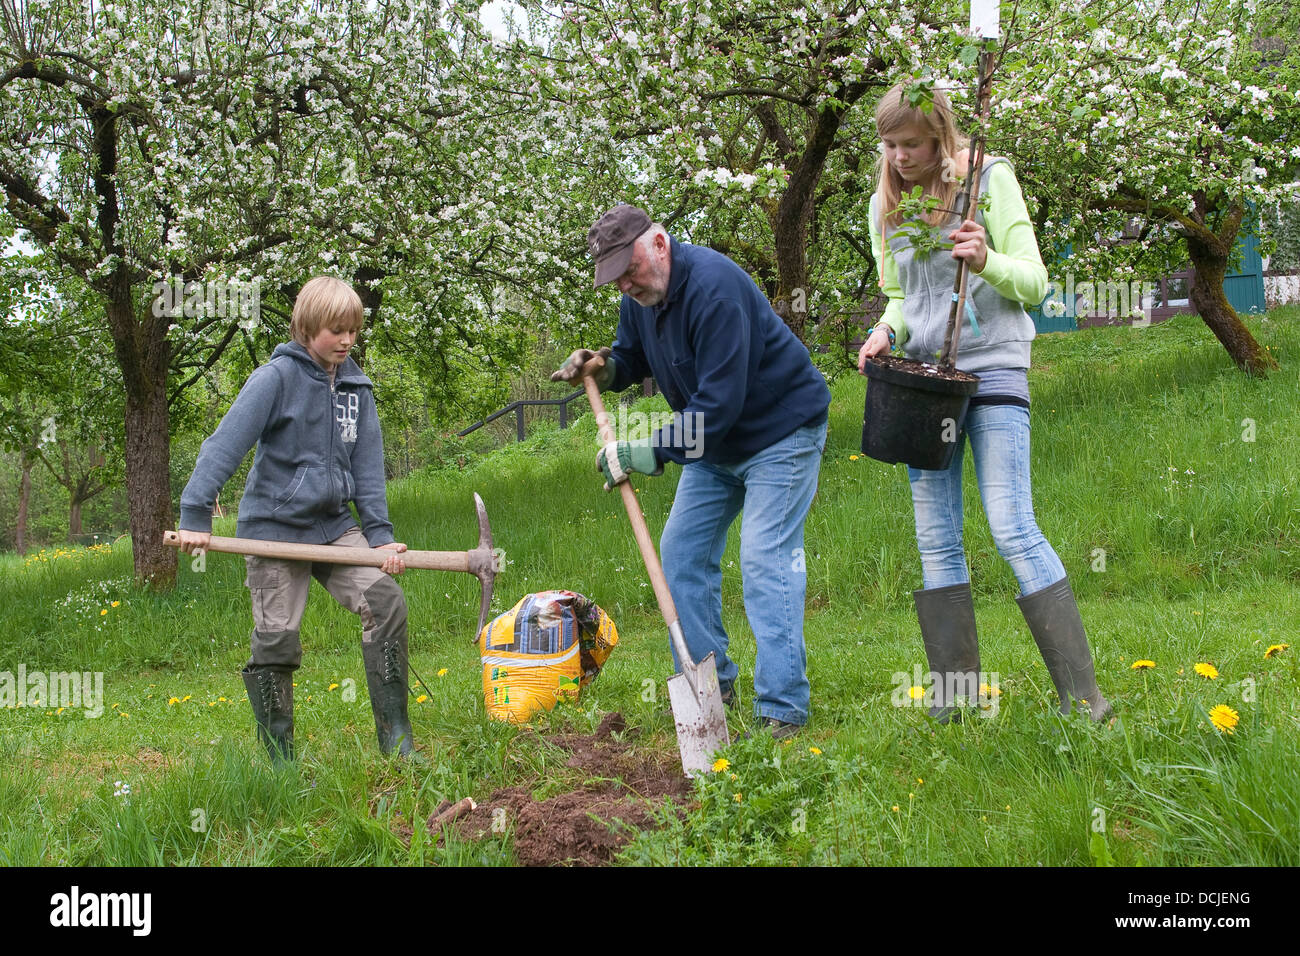 Apple, fruit-tree, tree plant, planting, Apfelbaum pflanzen, Obstbaum, Apfel, Obstplantage, Obstanbau, Obst, Malus - Stock Image